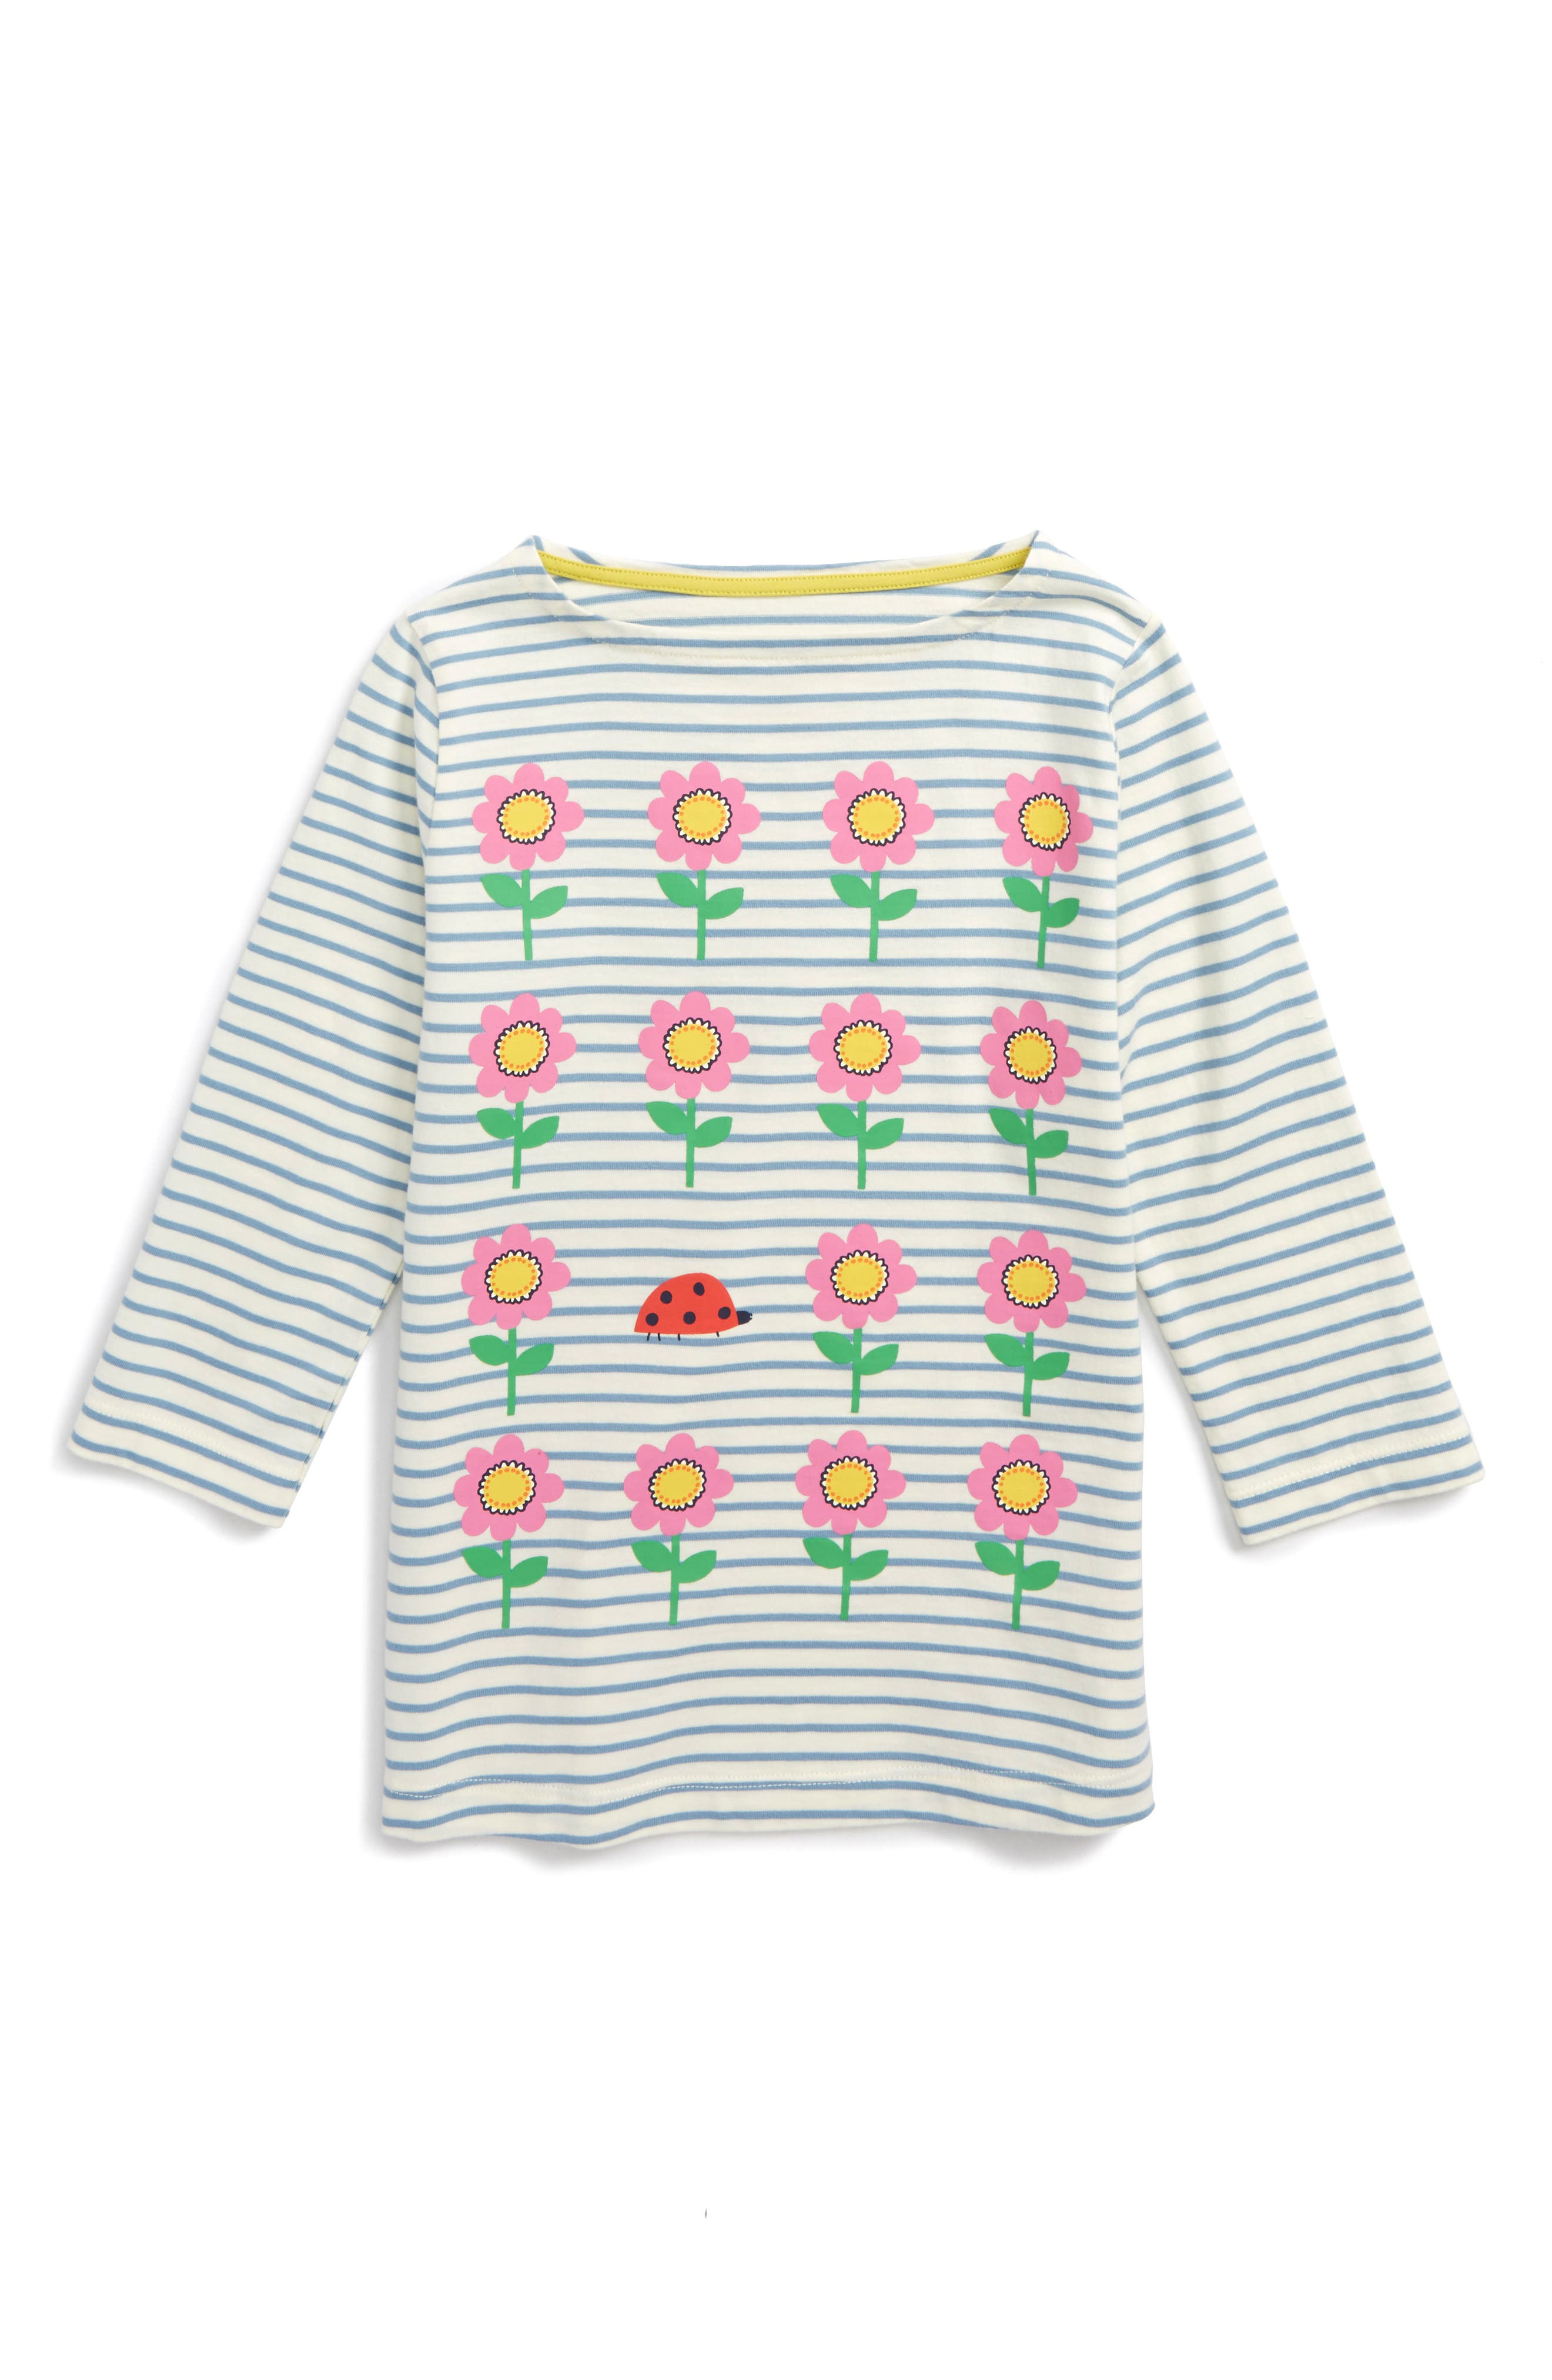 Odd One Out Graphic Tee,                         Main,                         color,